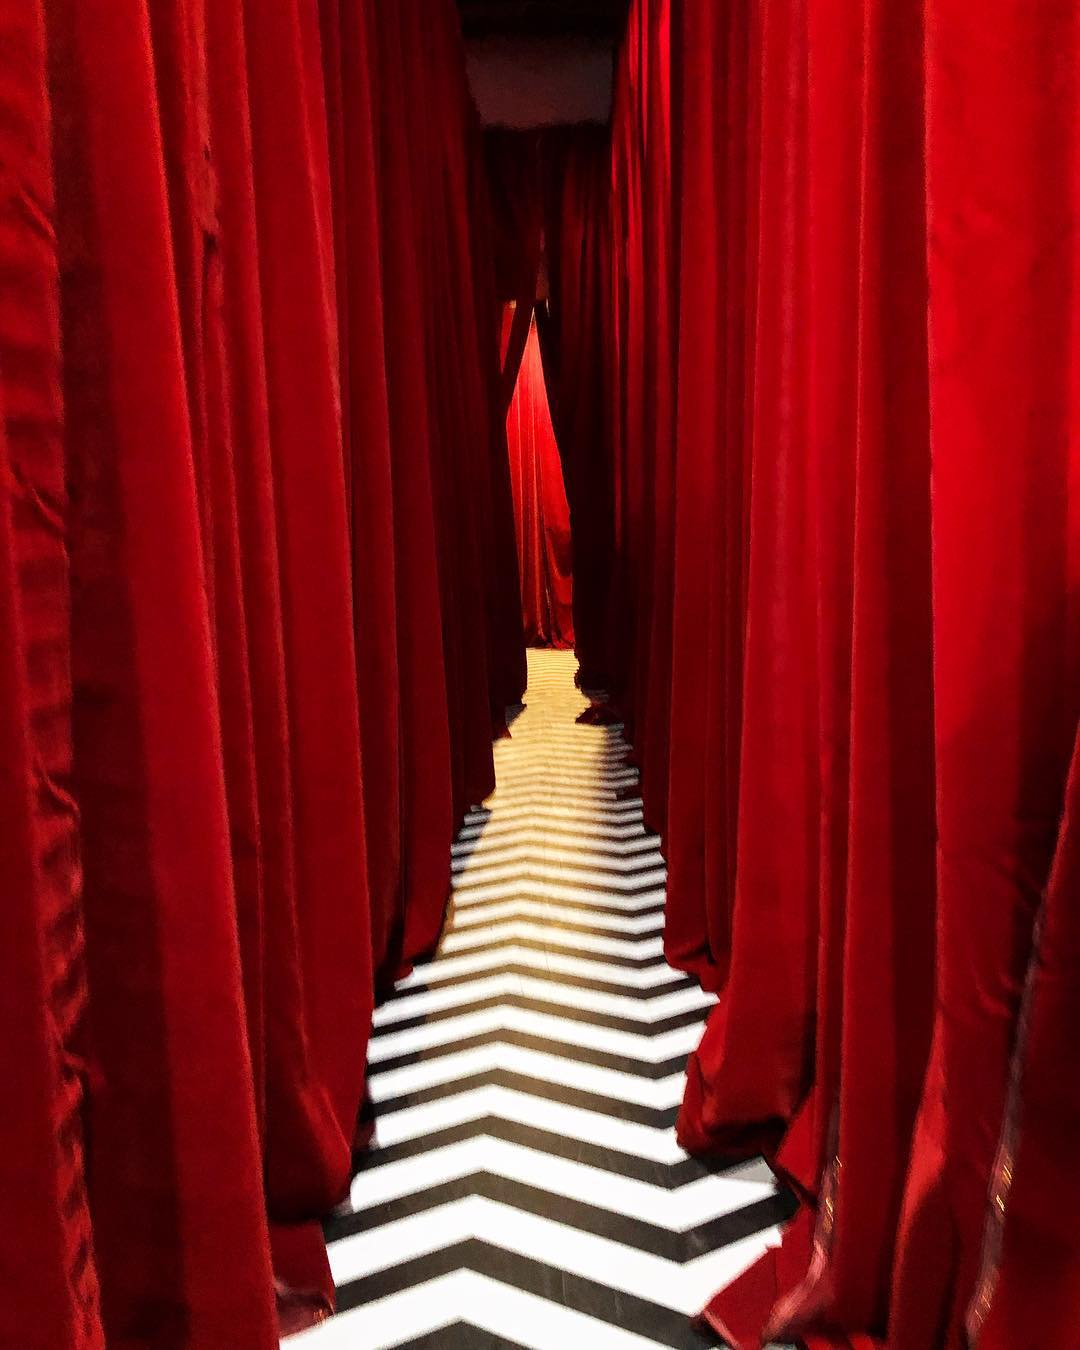 Thanks for setting up such an awesome popup twinpeaks andhellip